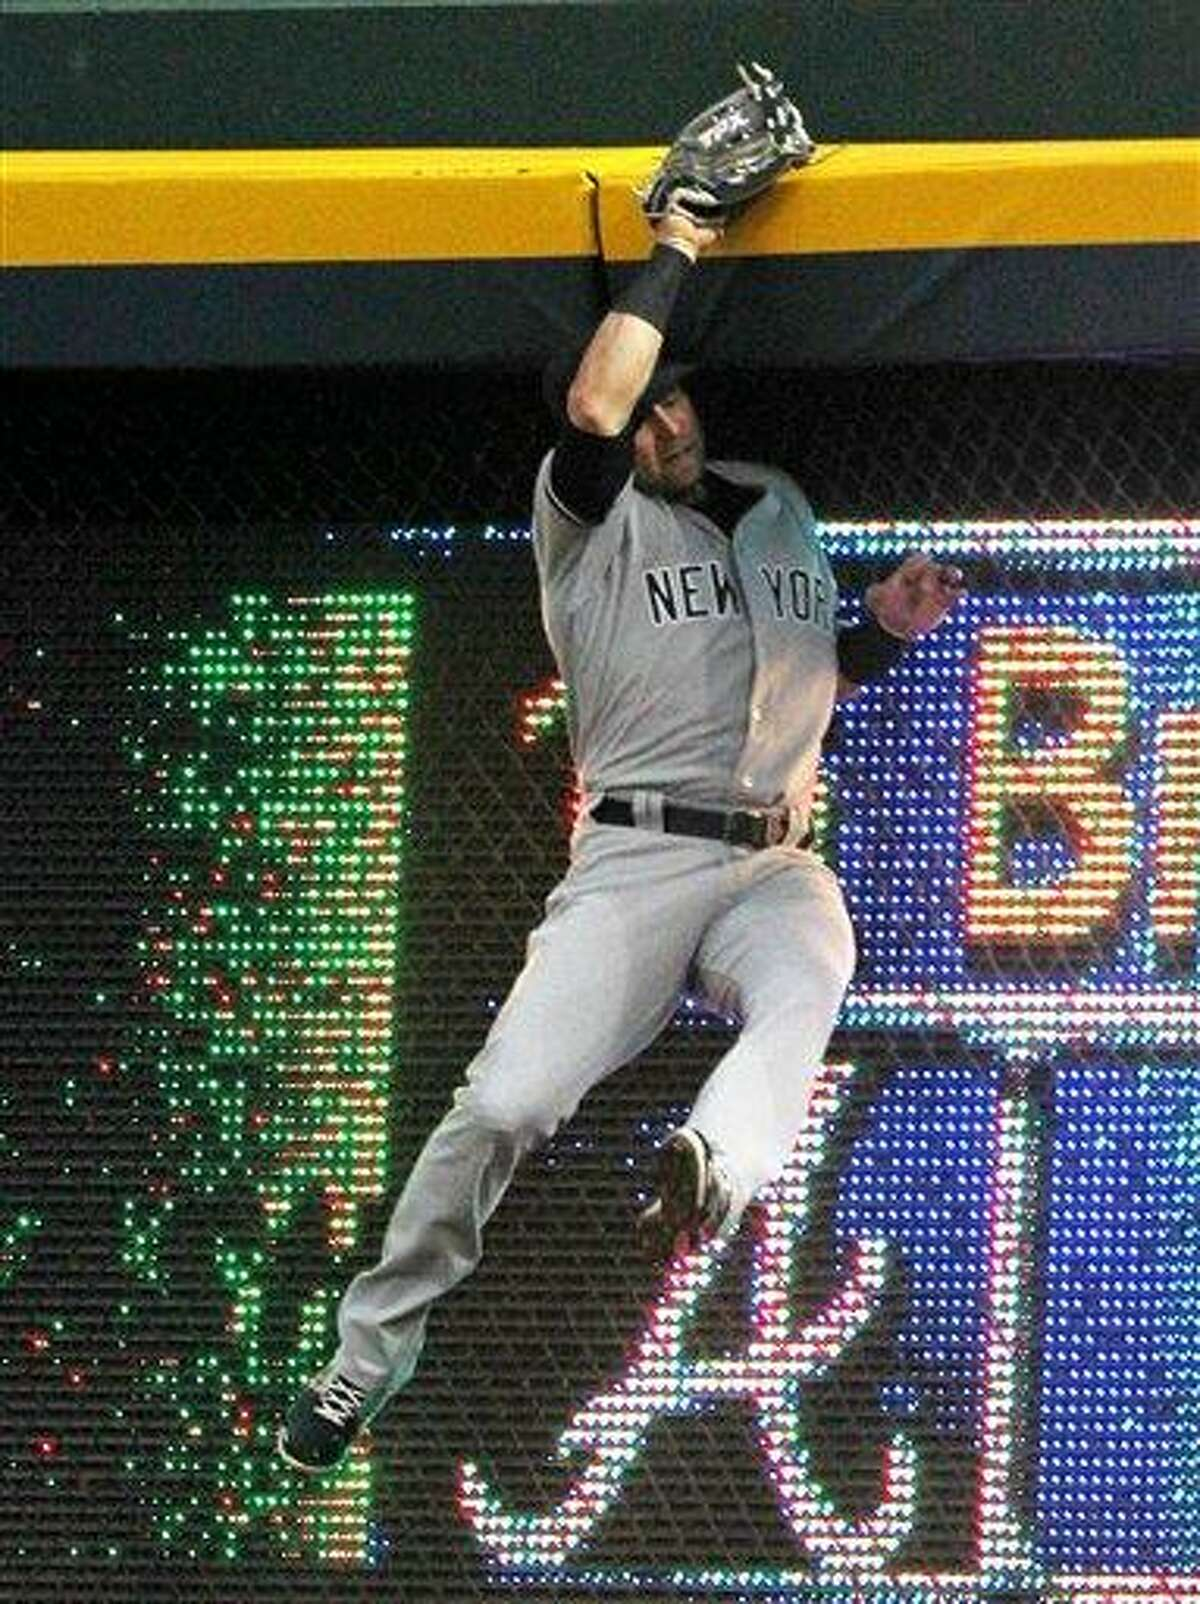 New York Yankees right fielder Nick Swisher makes a leaping catch against the wall on a hit by Atlanta Braves' Brian McCann preventing his homerun during an interleague baseball game in Atlanta on Monday, June 11, 2012. (AP Photo/Atlanta Journal & Constitution, Curtis Compton)